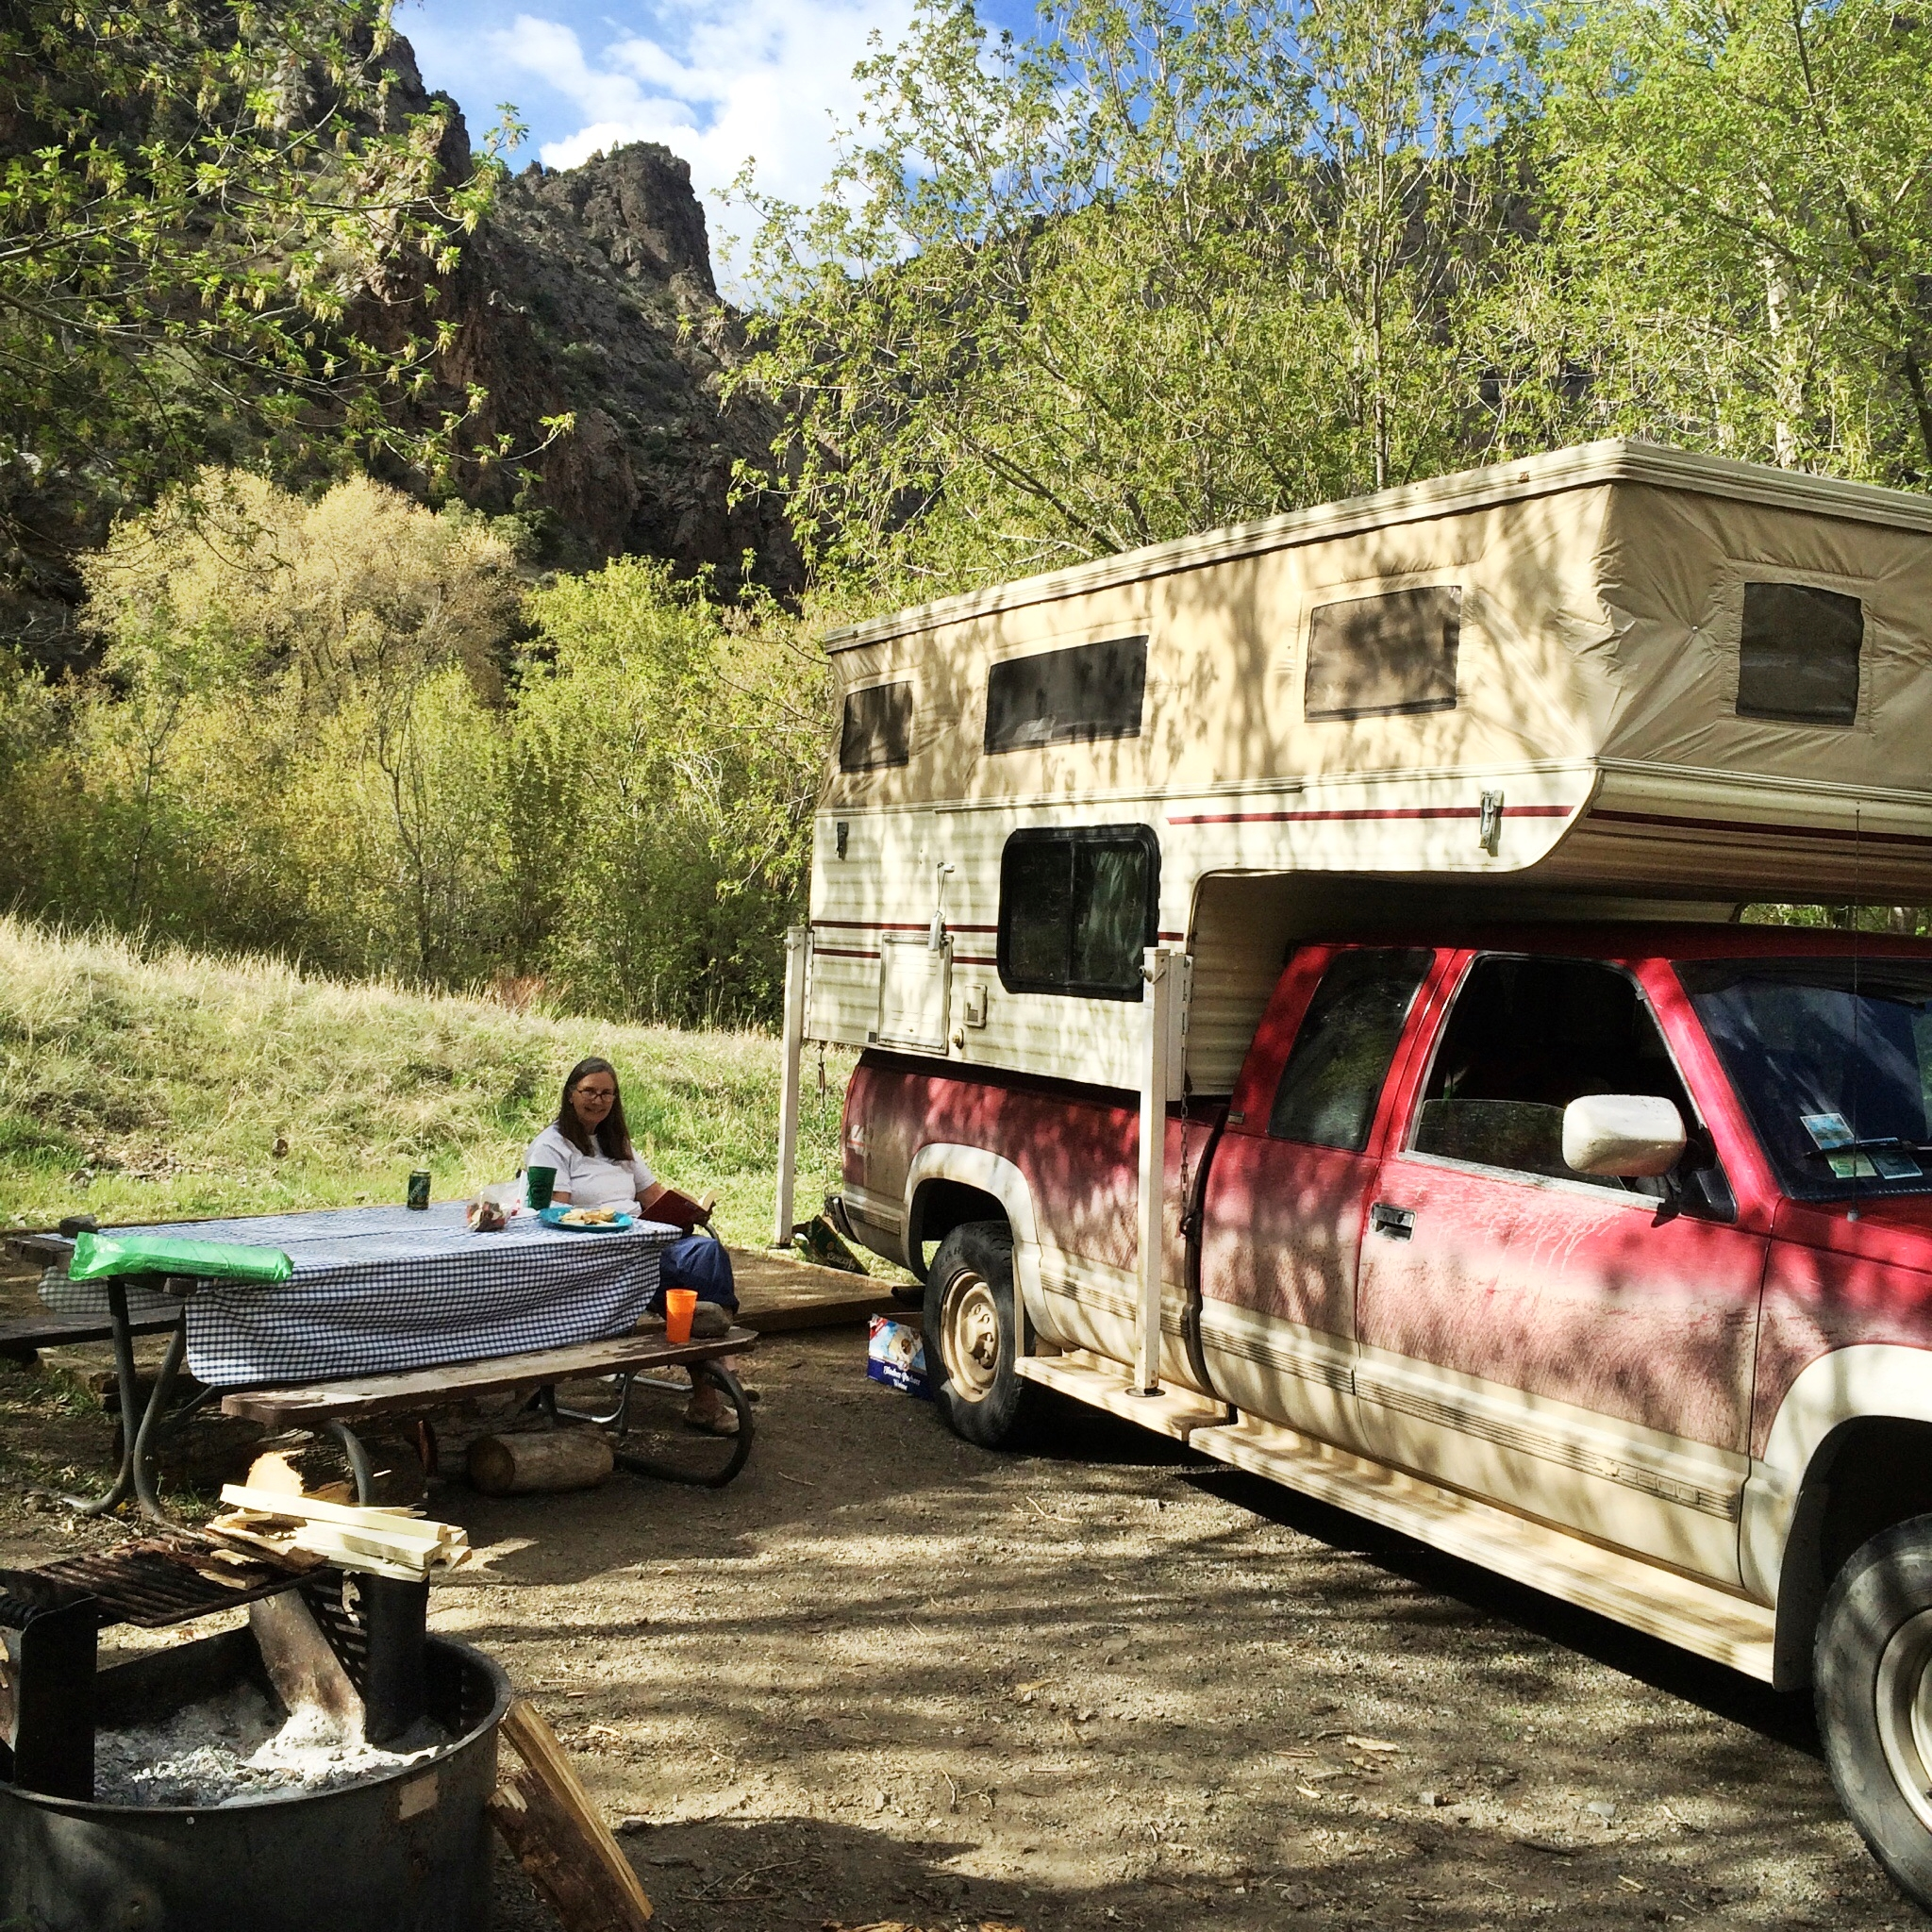 Our campsite in Th East Portal campground of the Black Canyon